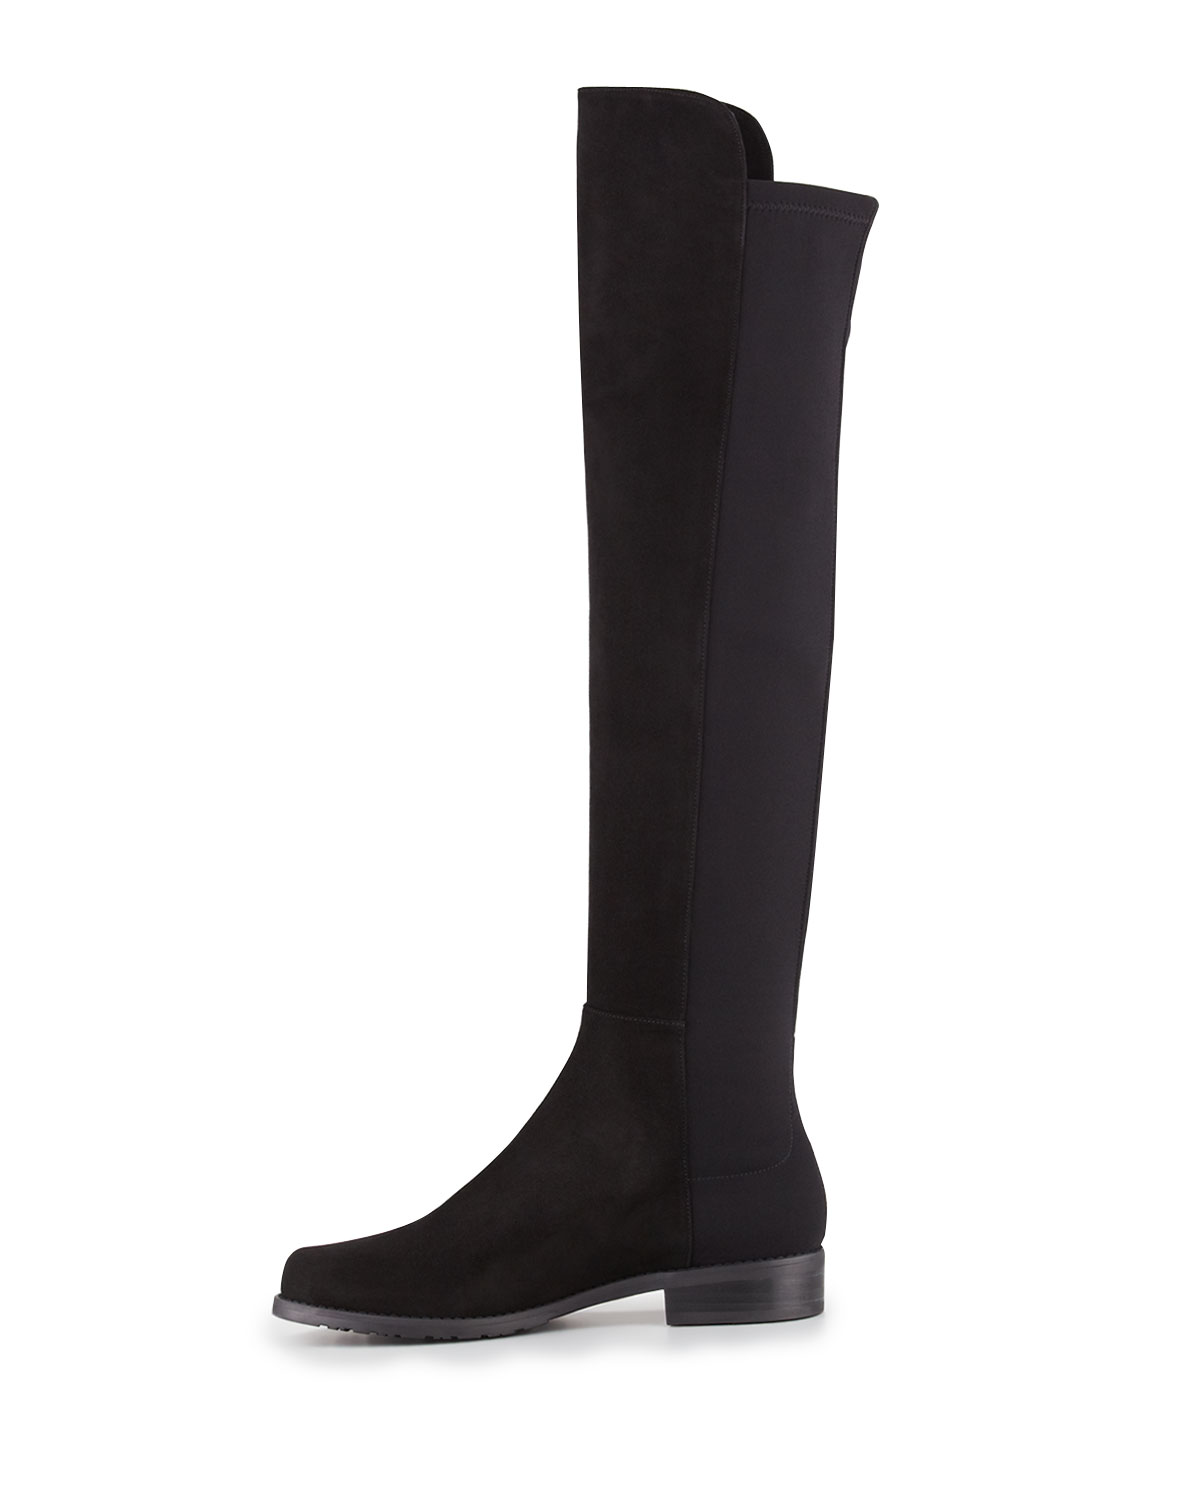 Knee boot, black (made to order)